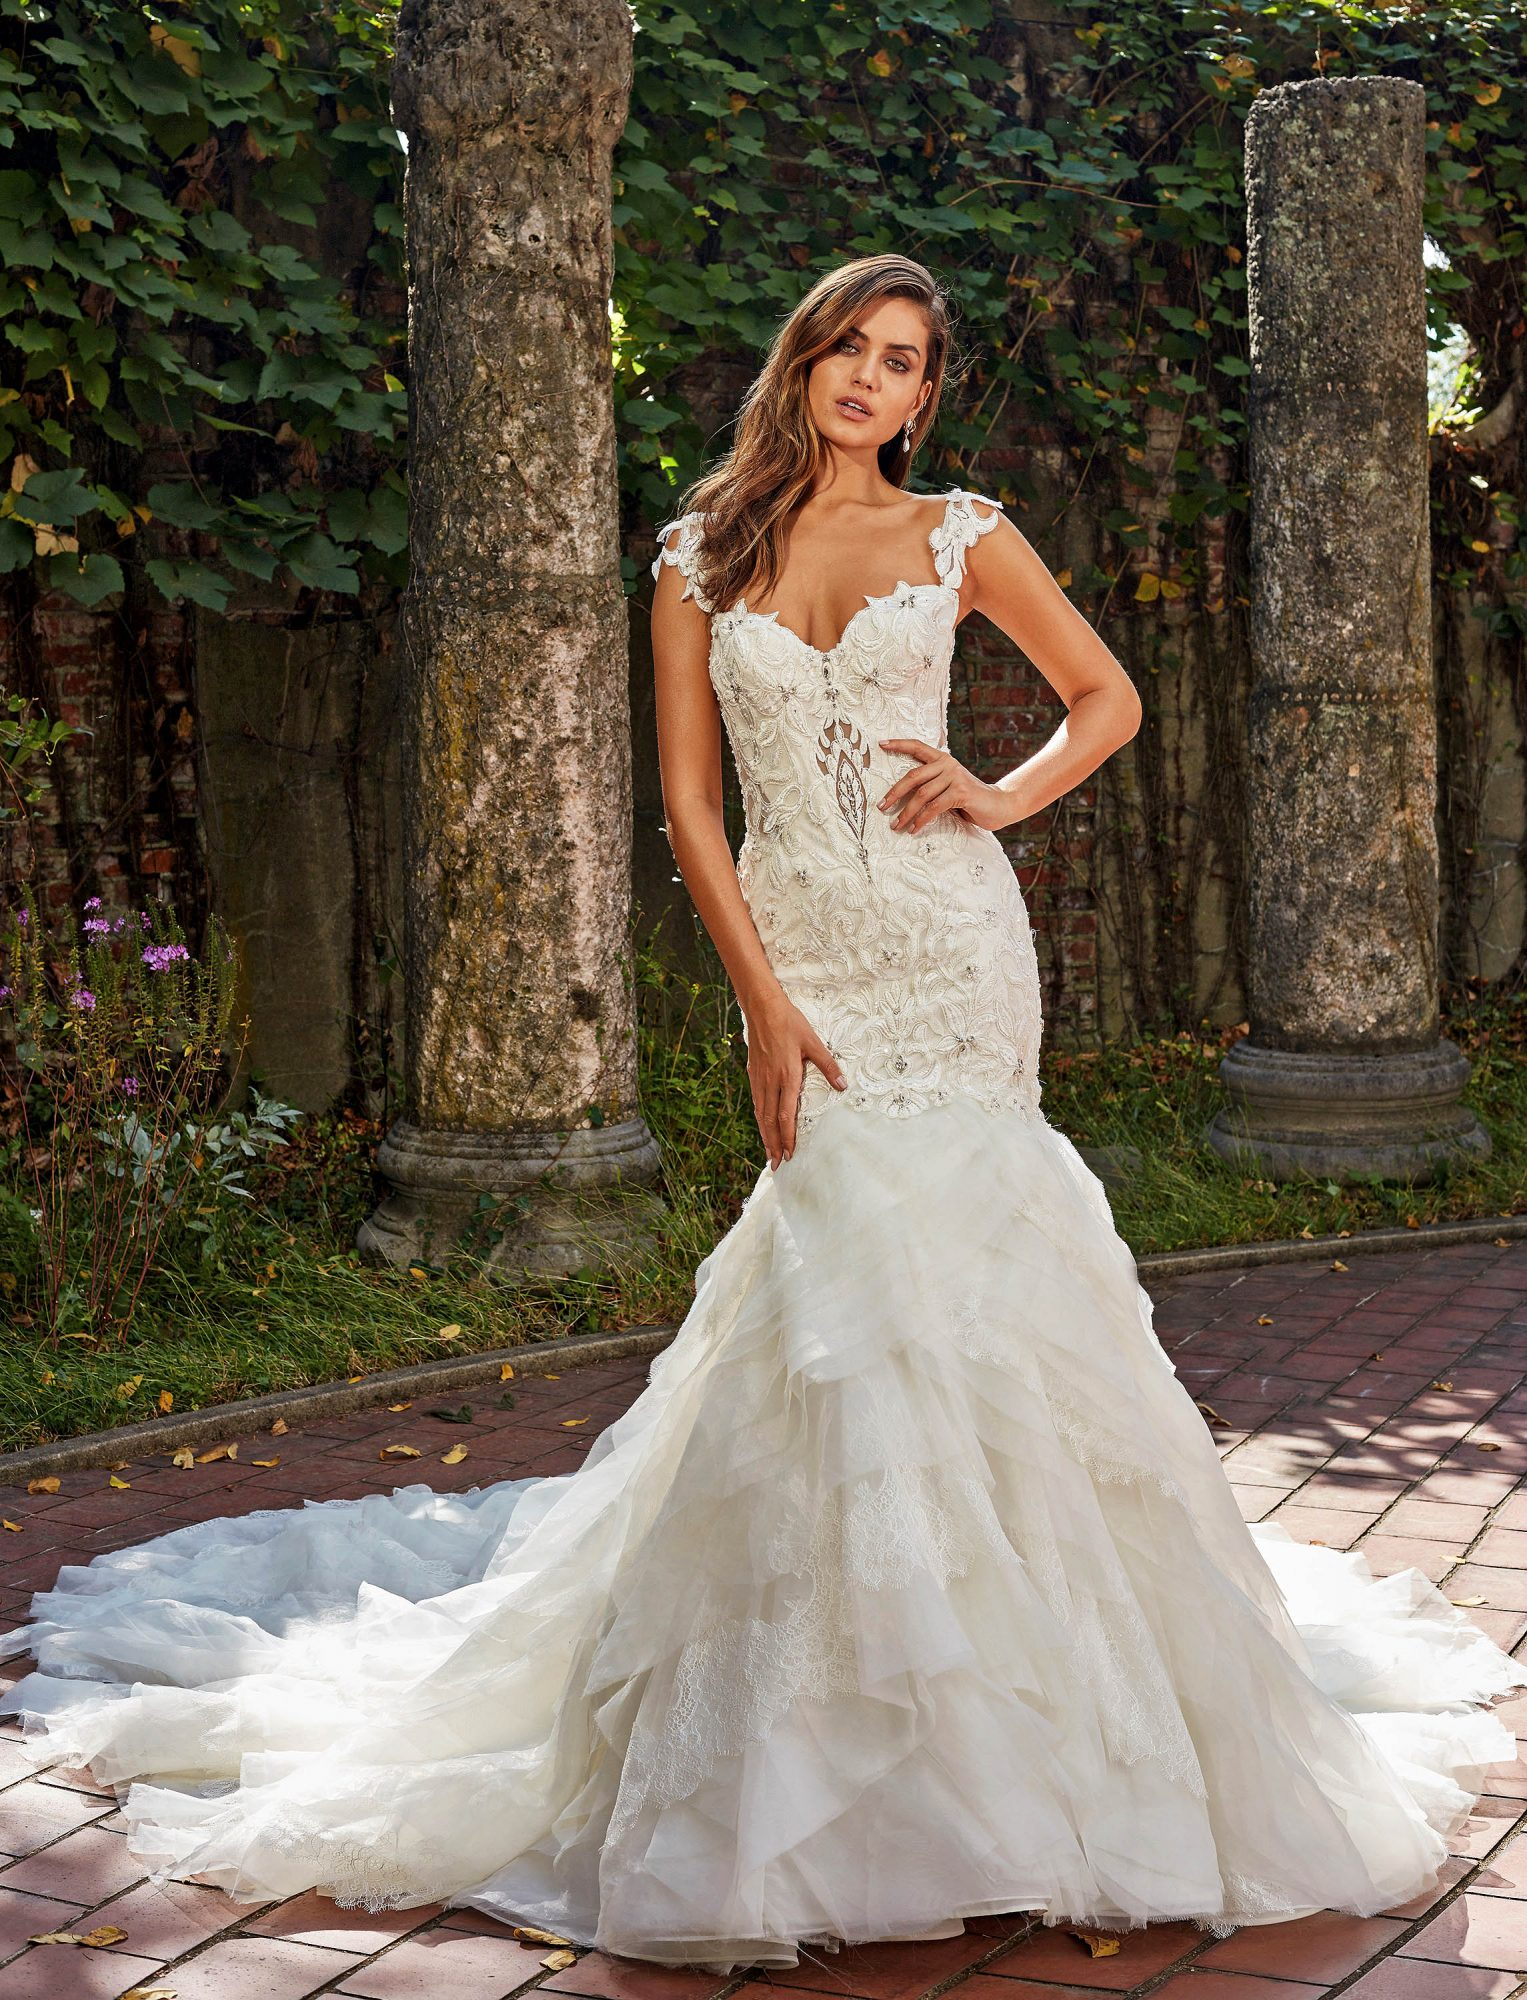 Lace mermaid wedding dress with sweetheart neckline and layered skirt